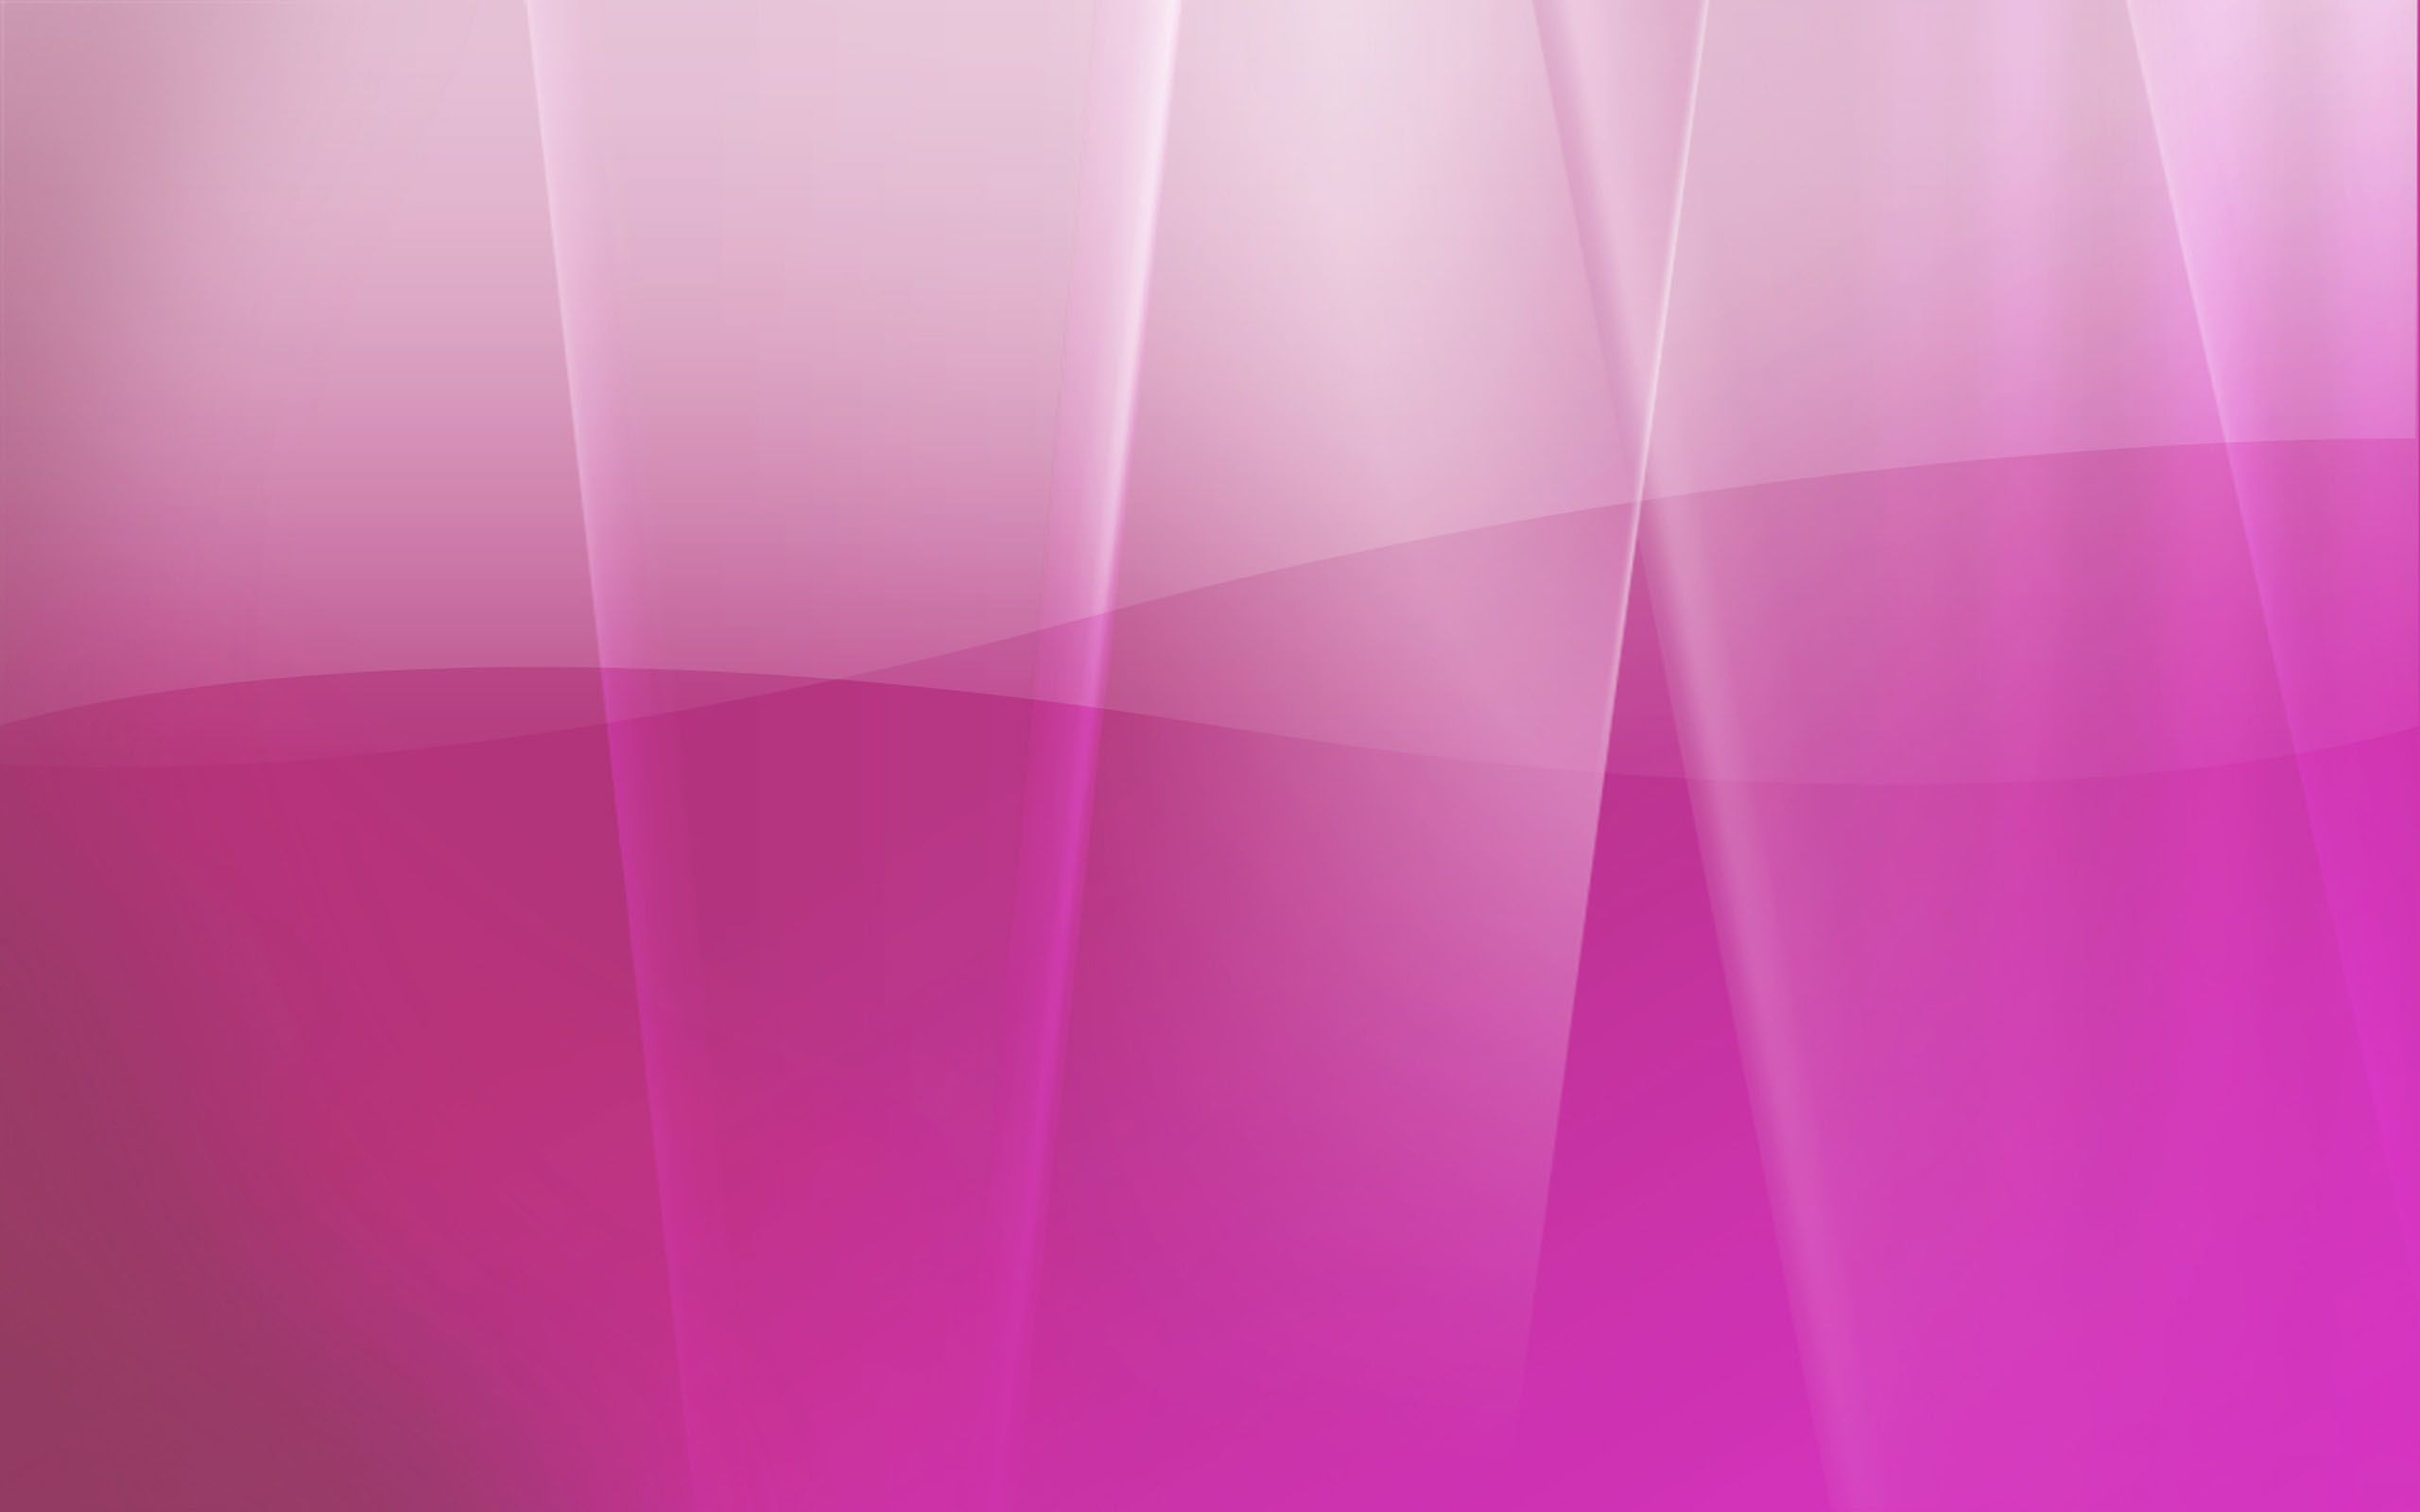 Solid Pink Backgrounds wallpaper Solid Pink Backgrounds hd wallpaper 2560x1600